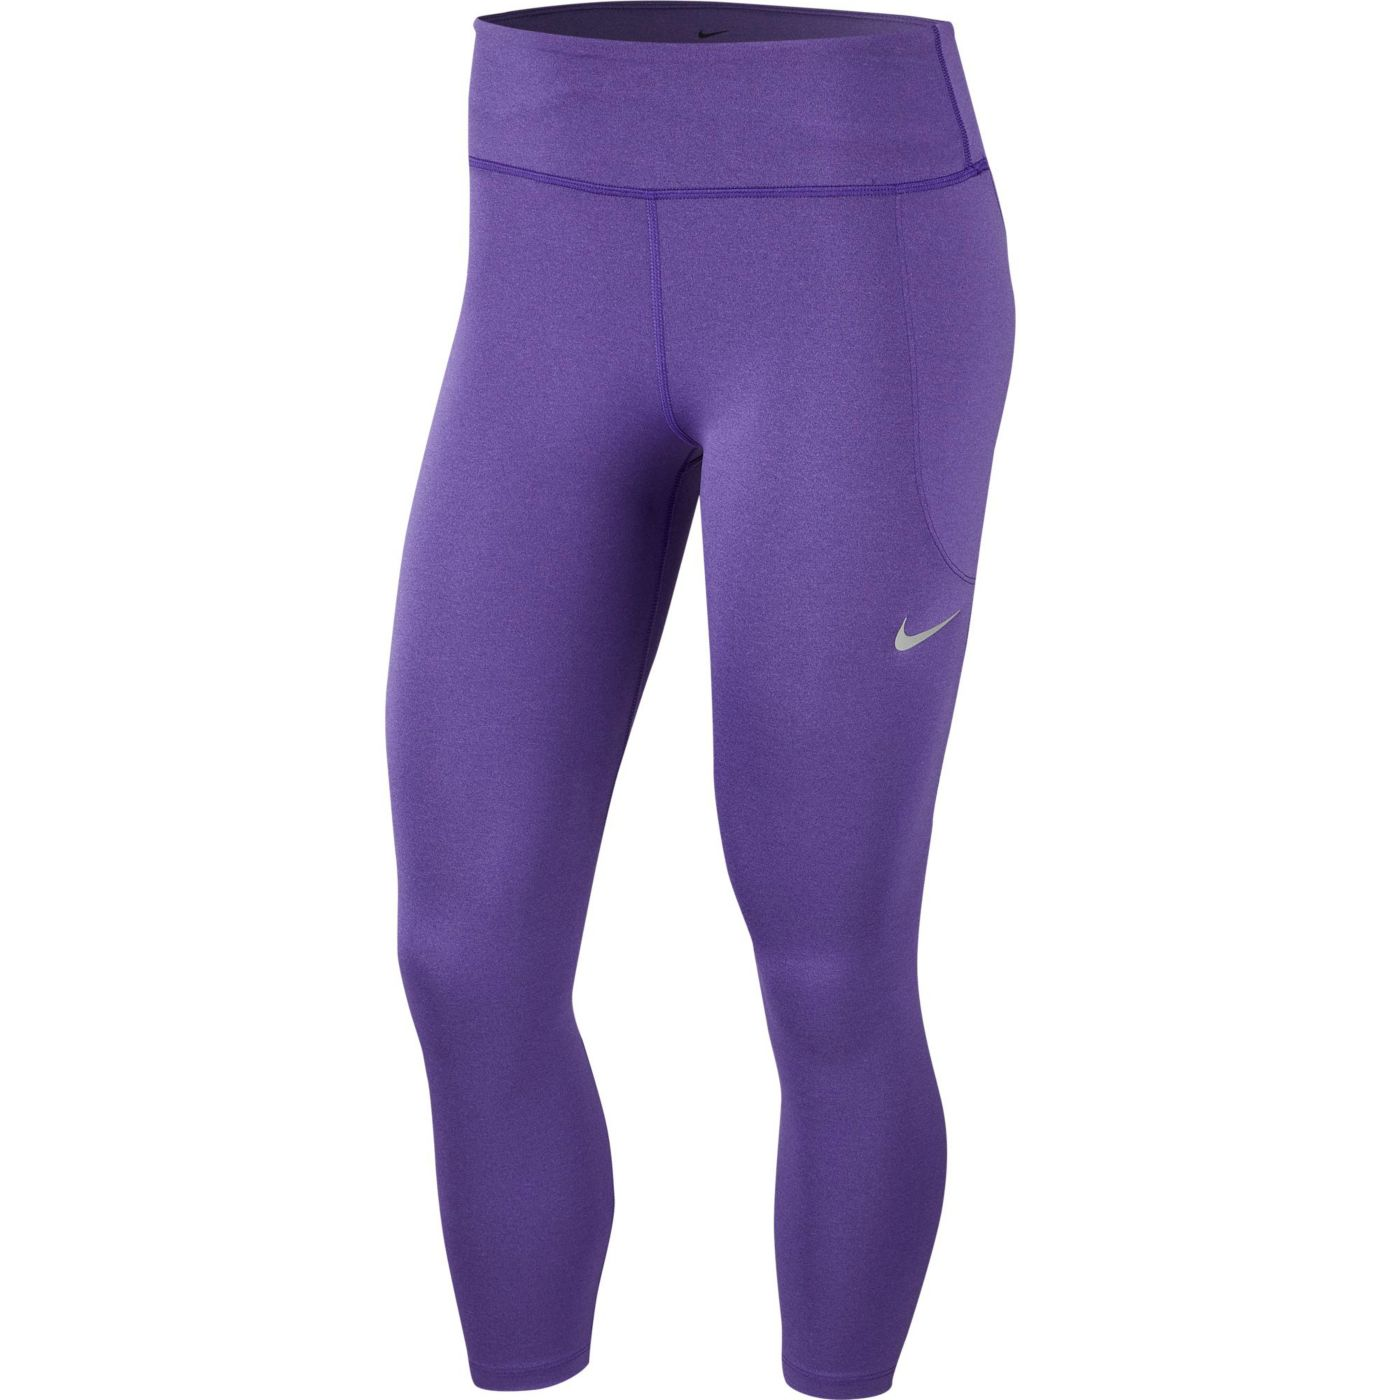 Nike Women's Fast 7/8 Running Cropped tights